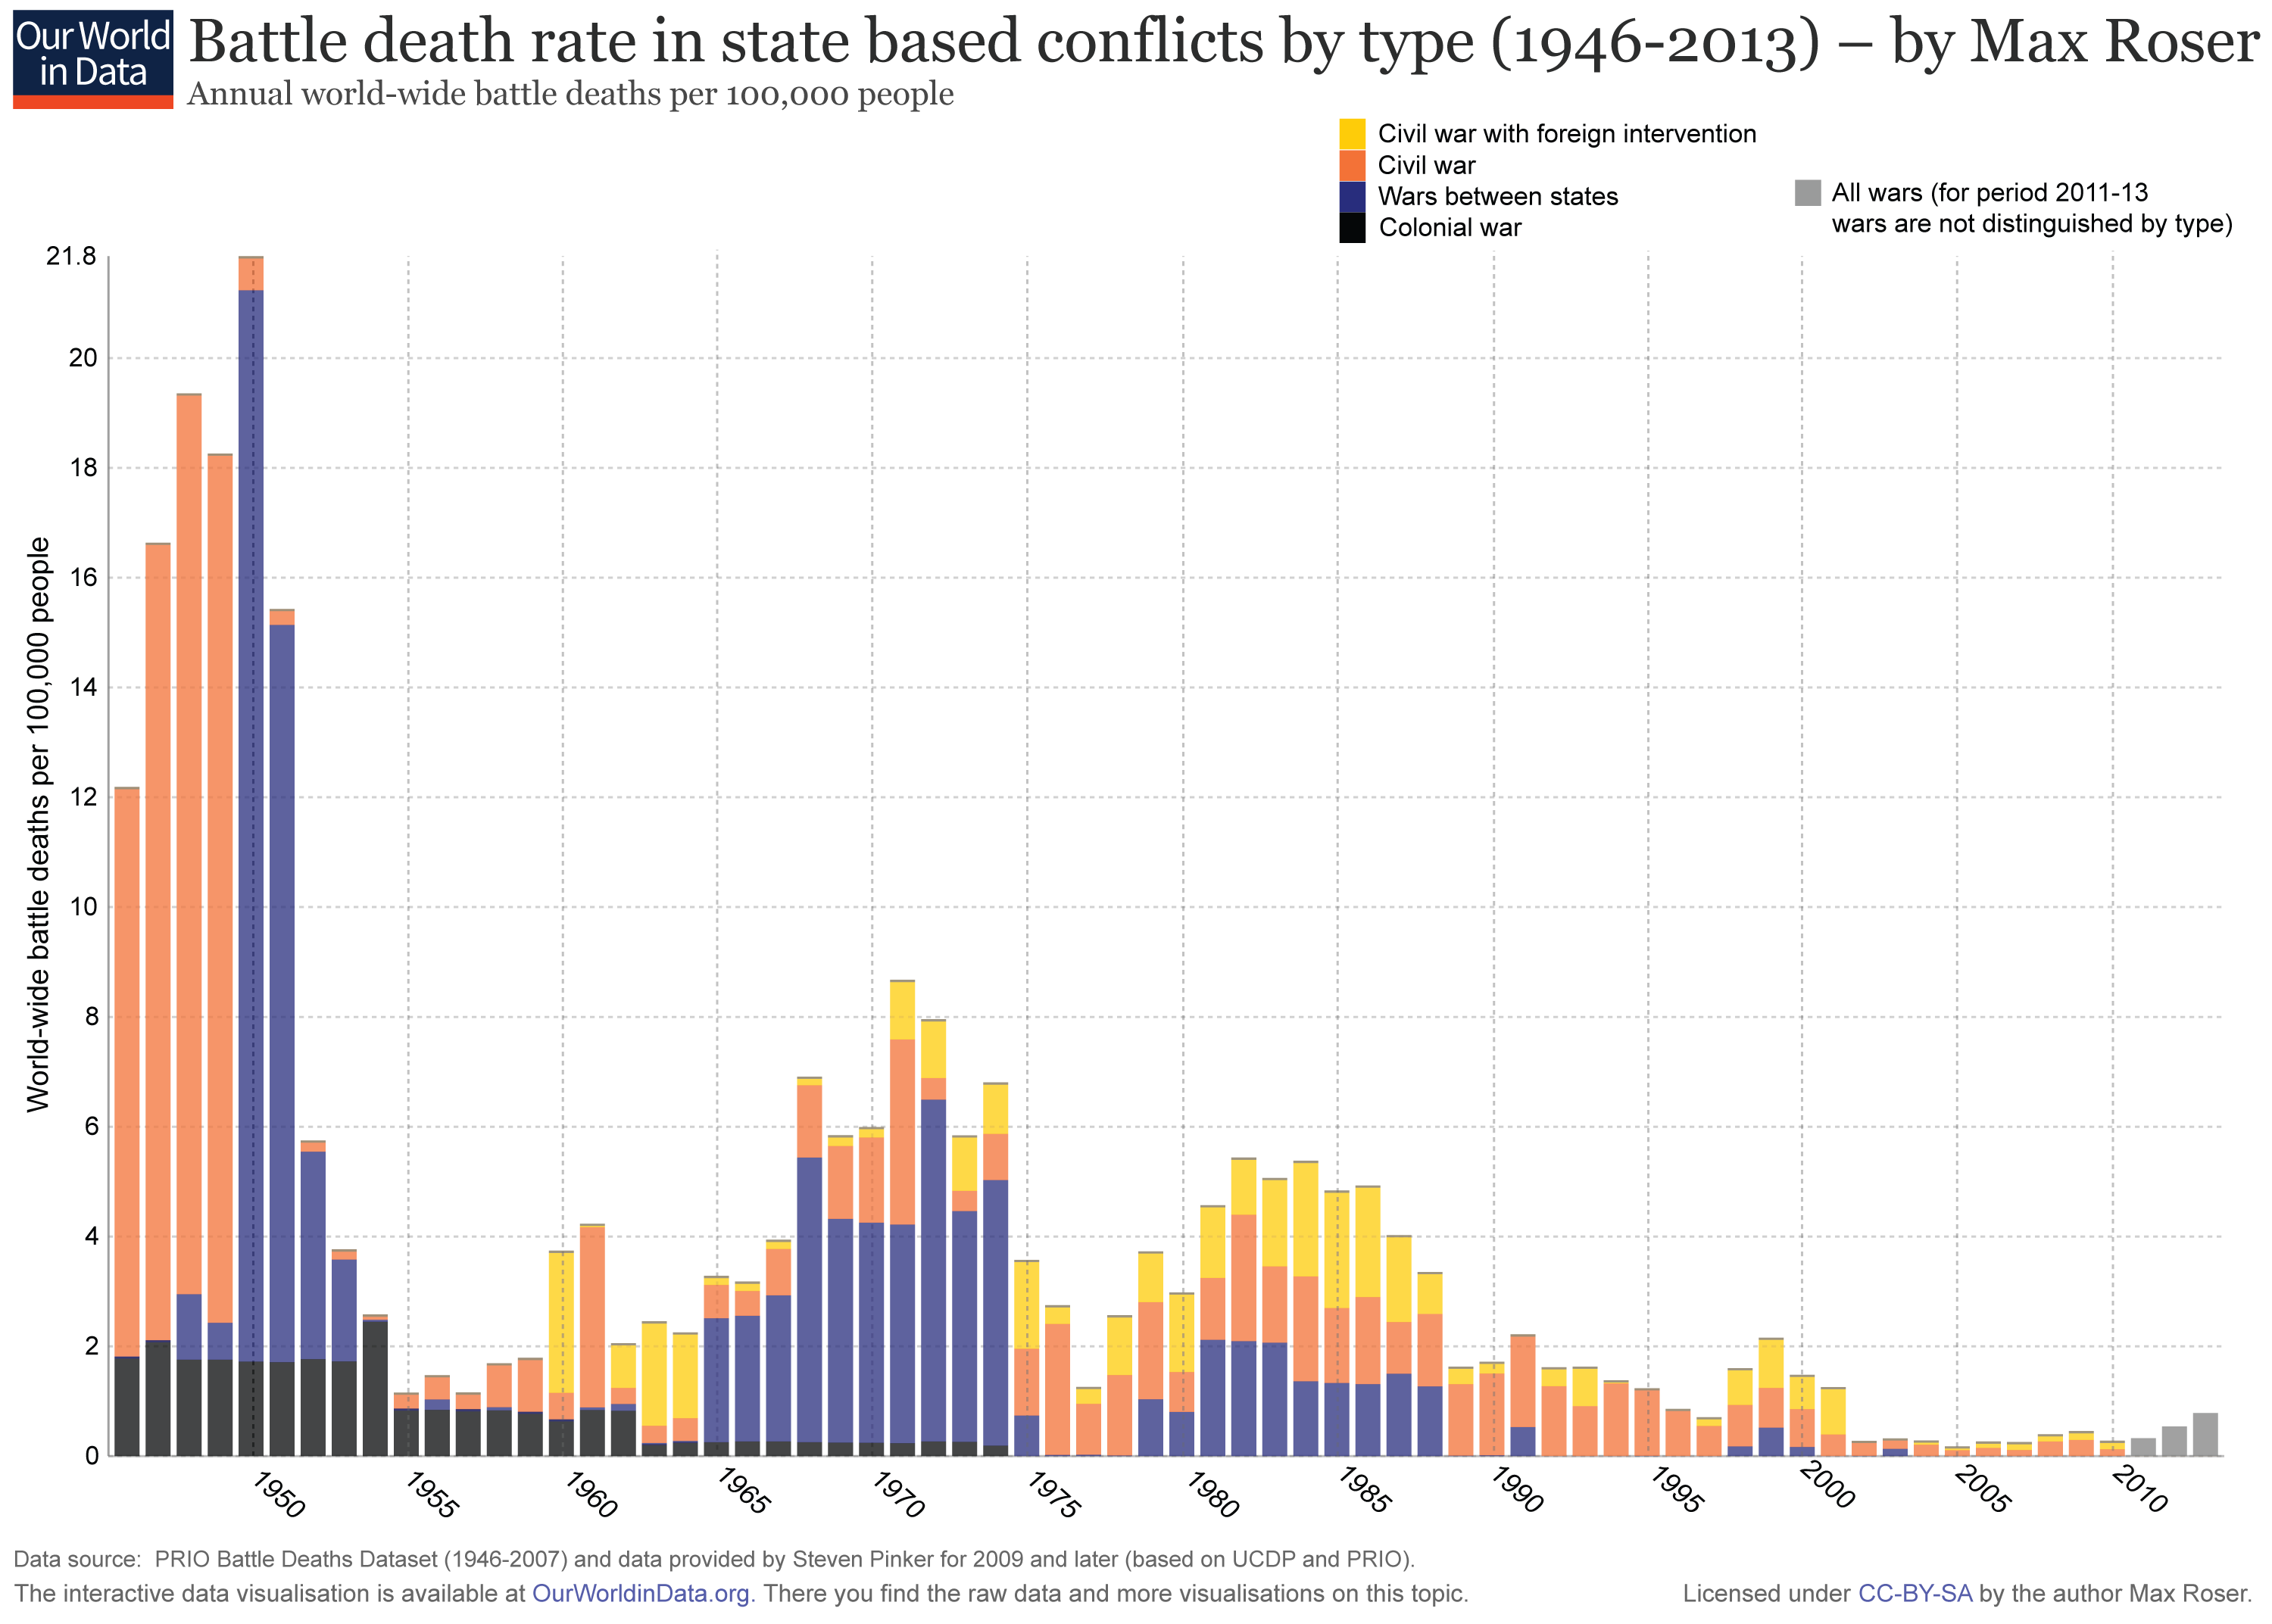 ourworldindata_wars-after-1946-state-based-battle-death-rate-by-type.png